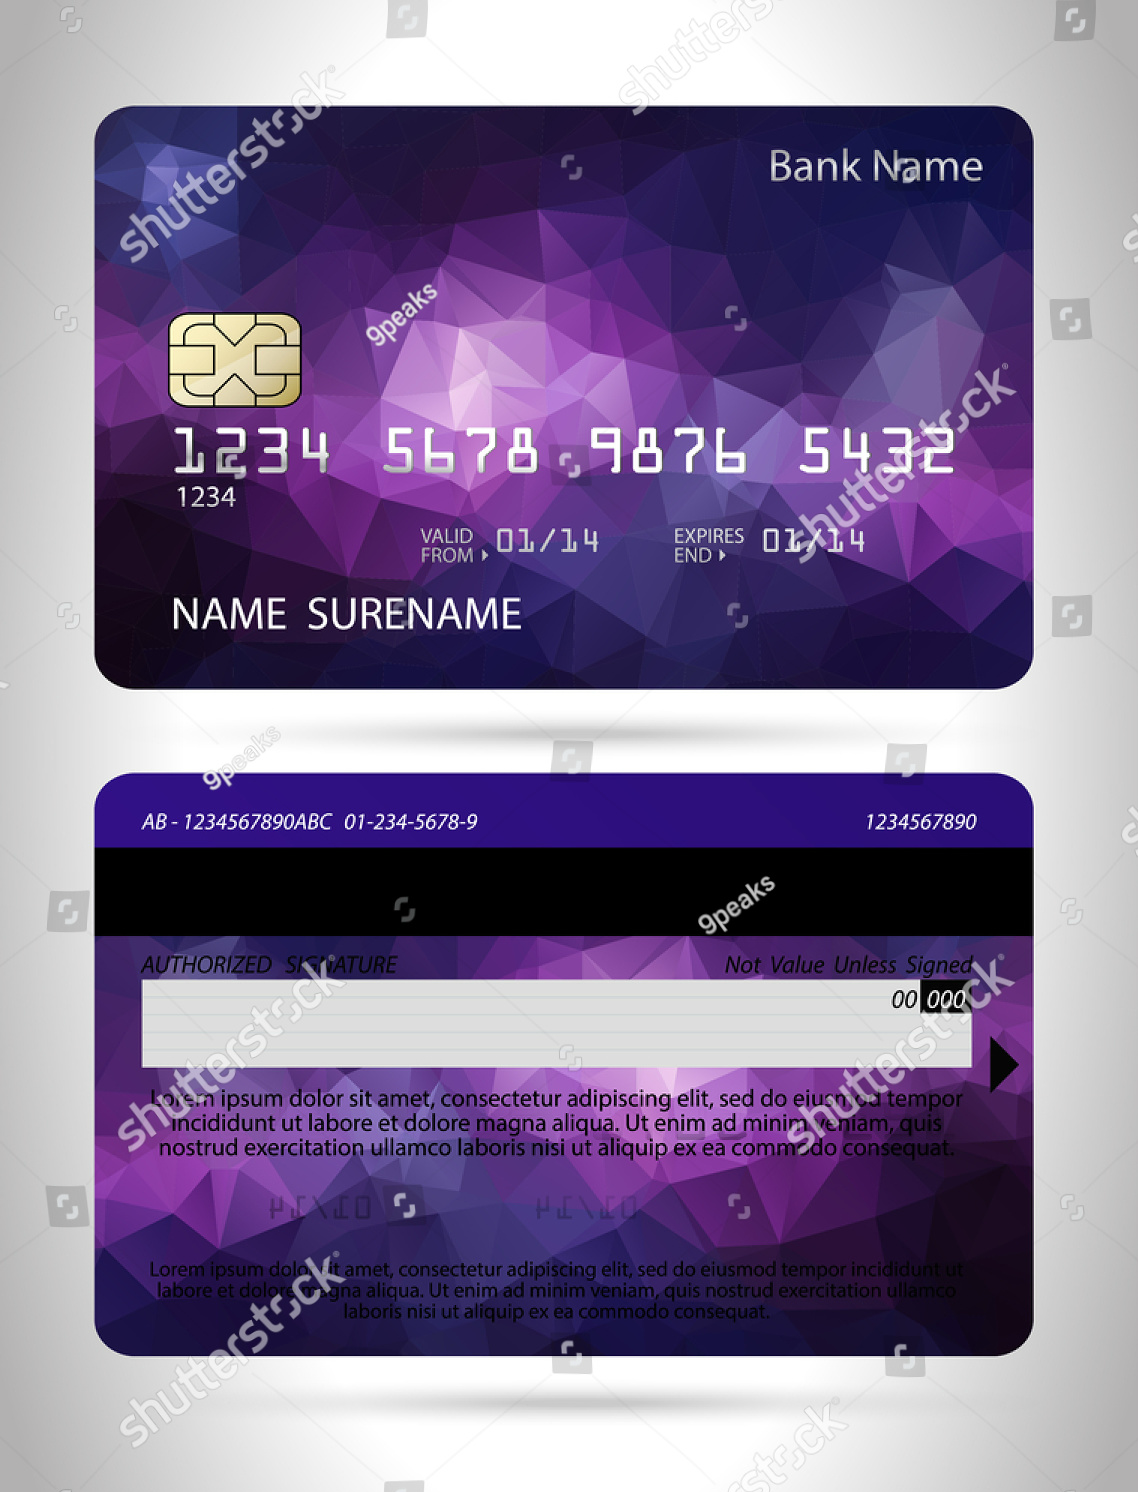 polygon-background-credit-card-design